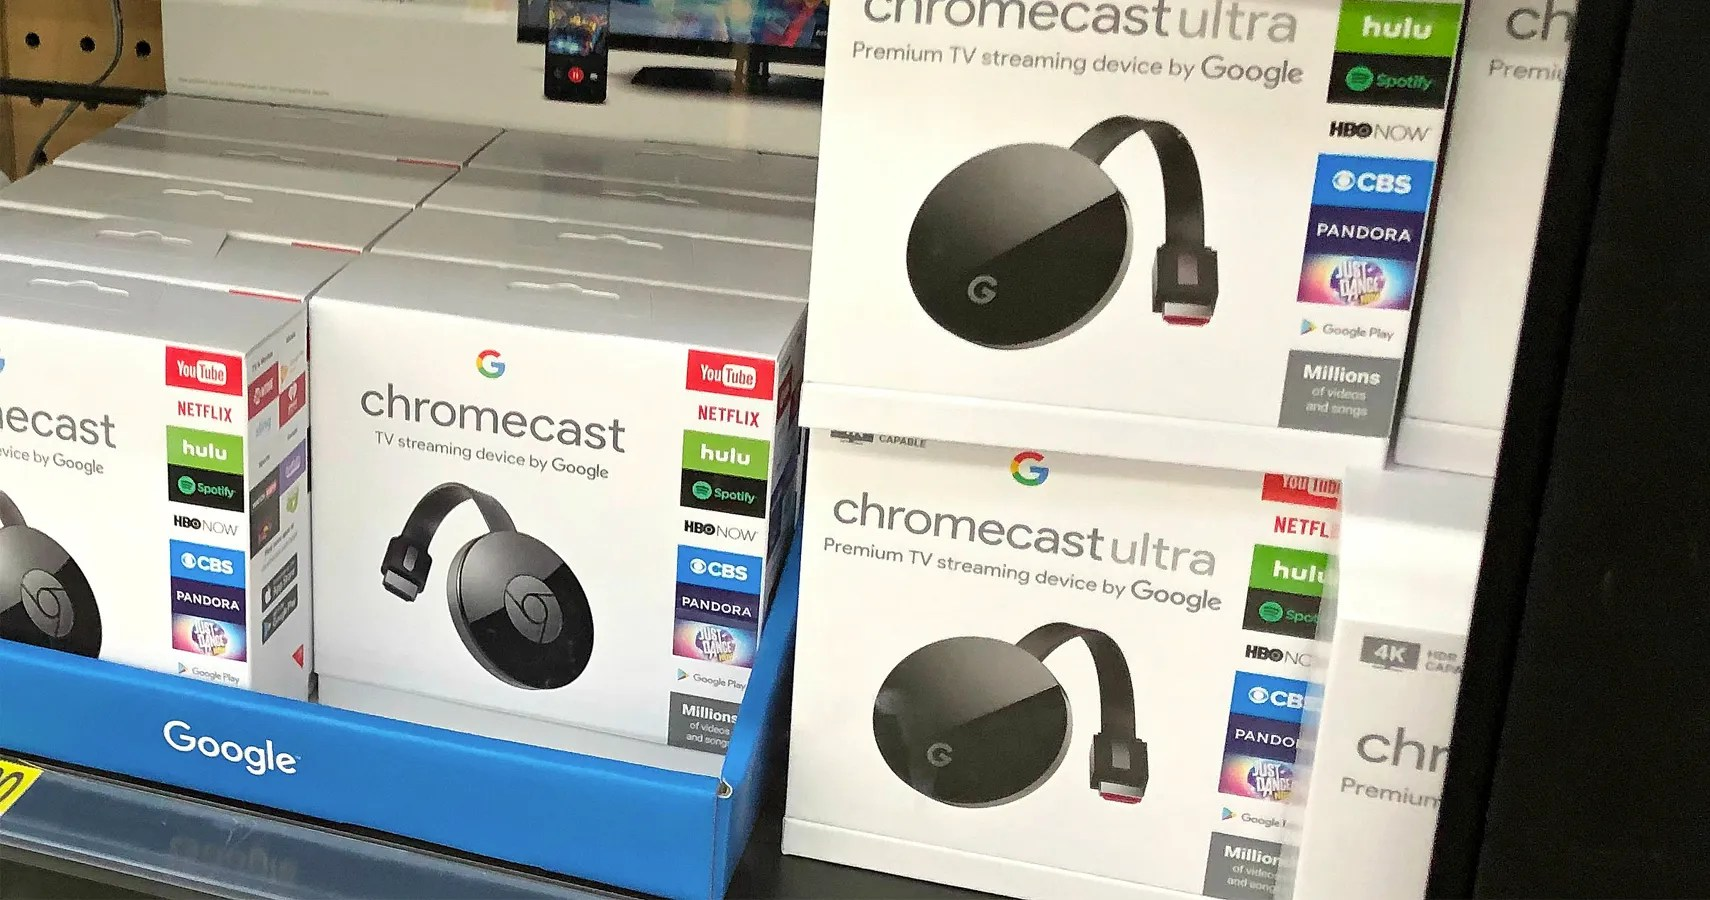 Ten Play Chromecast